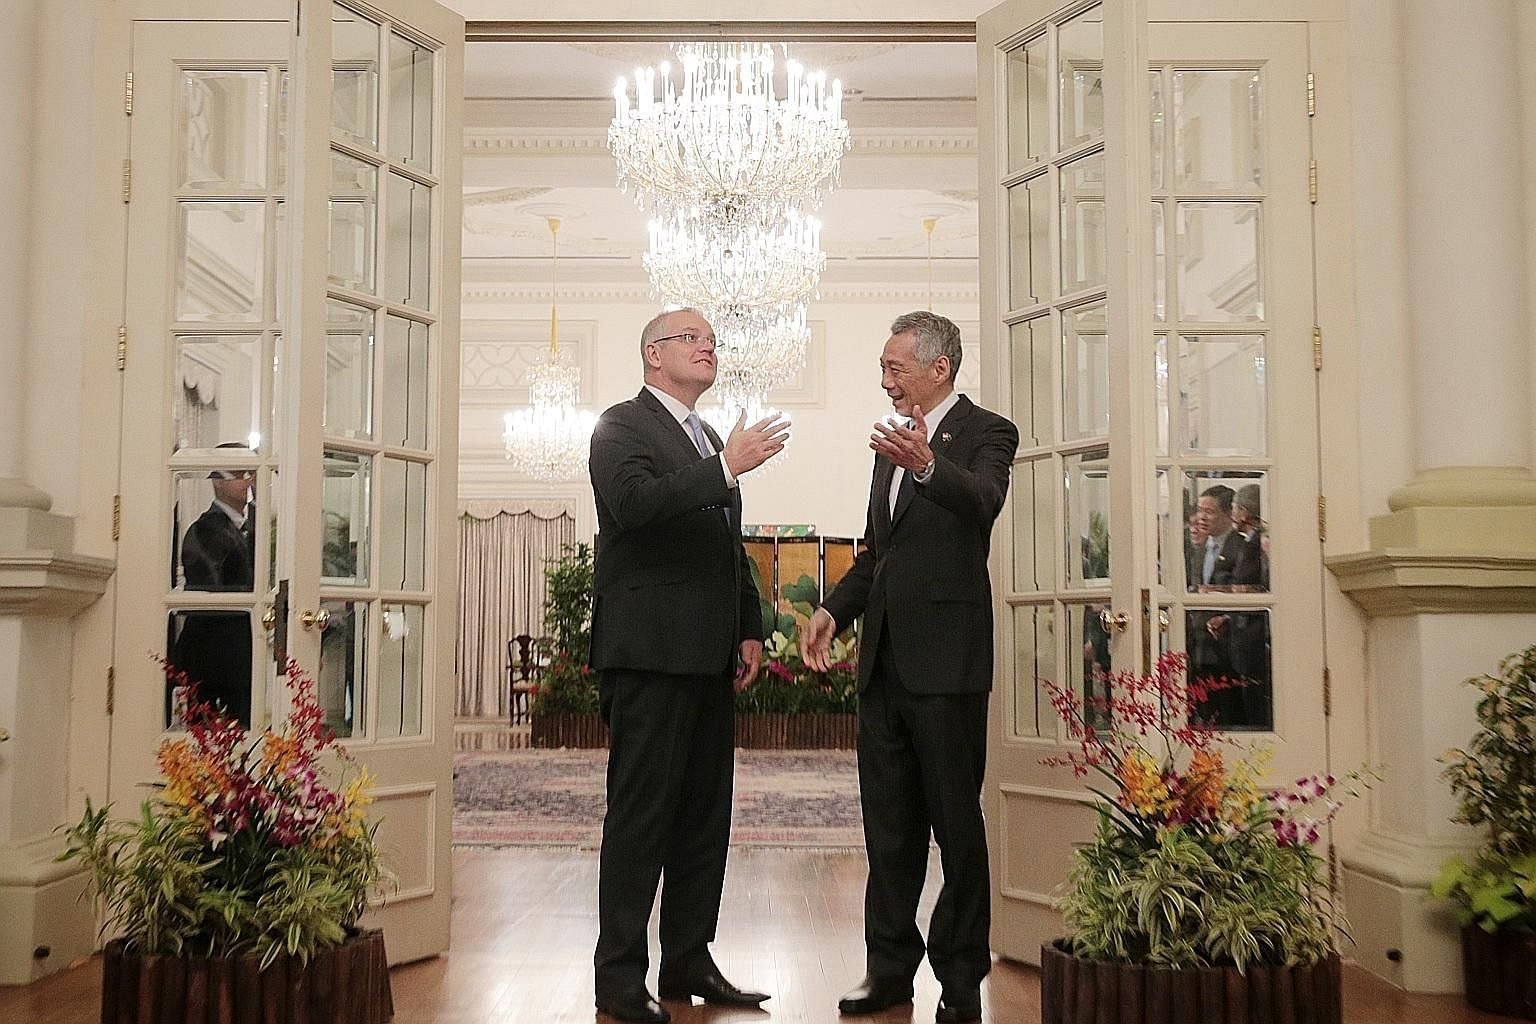 Prime Minister Lee Hsien Loong with Australian Prime Minister Scott Morrison at the Istana yesterday. Mr Morrison is on his first overseas trip after winning the Australian federal election last month. ST PHOTO: JASON QUAH